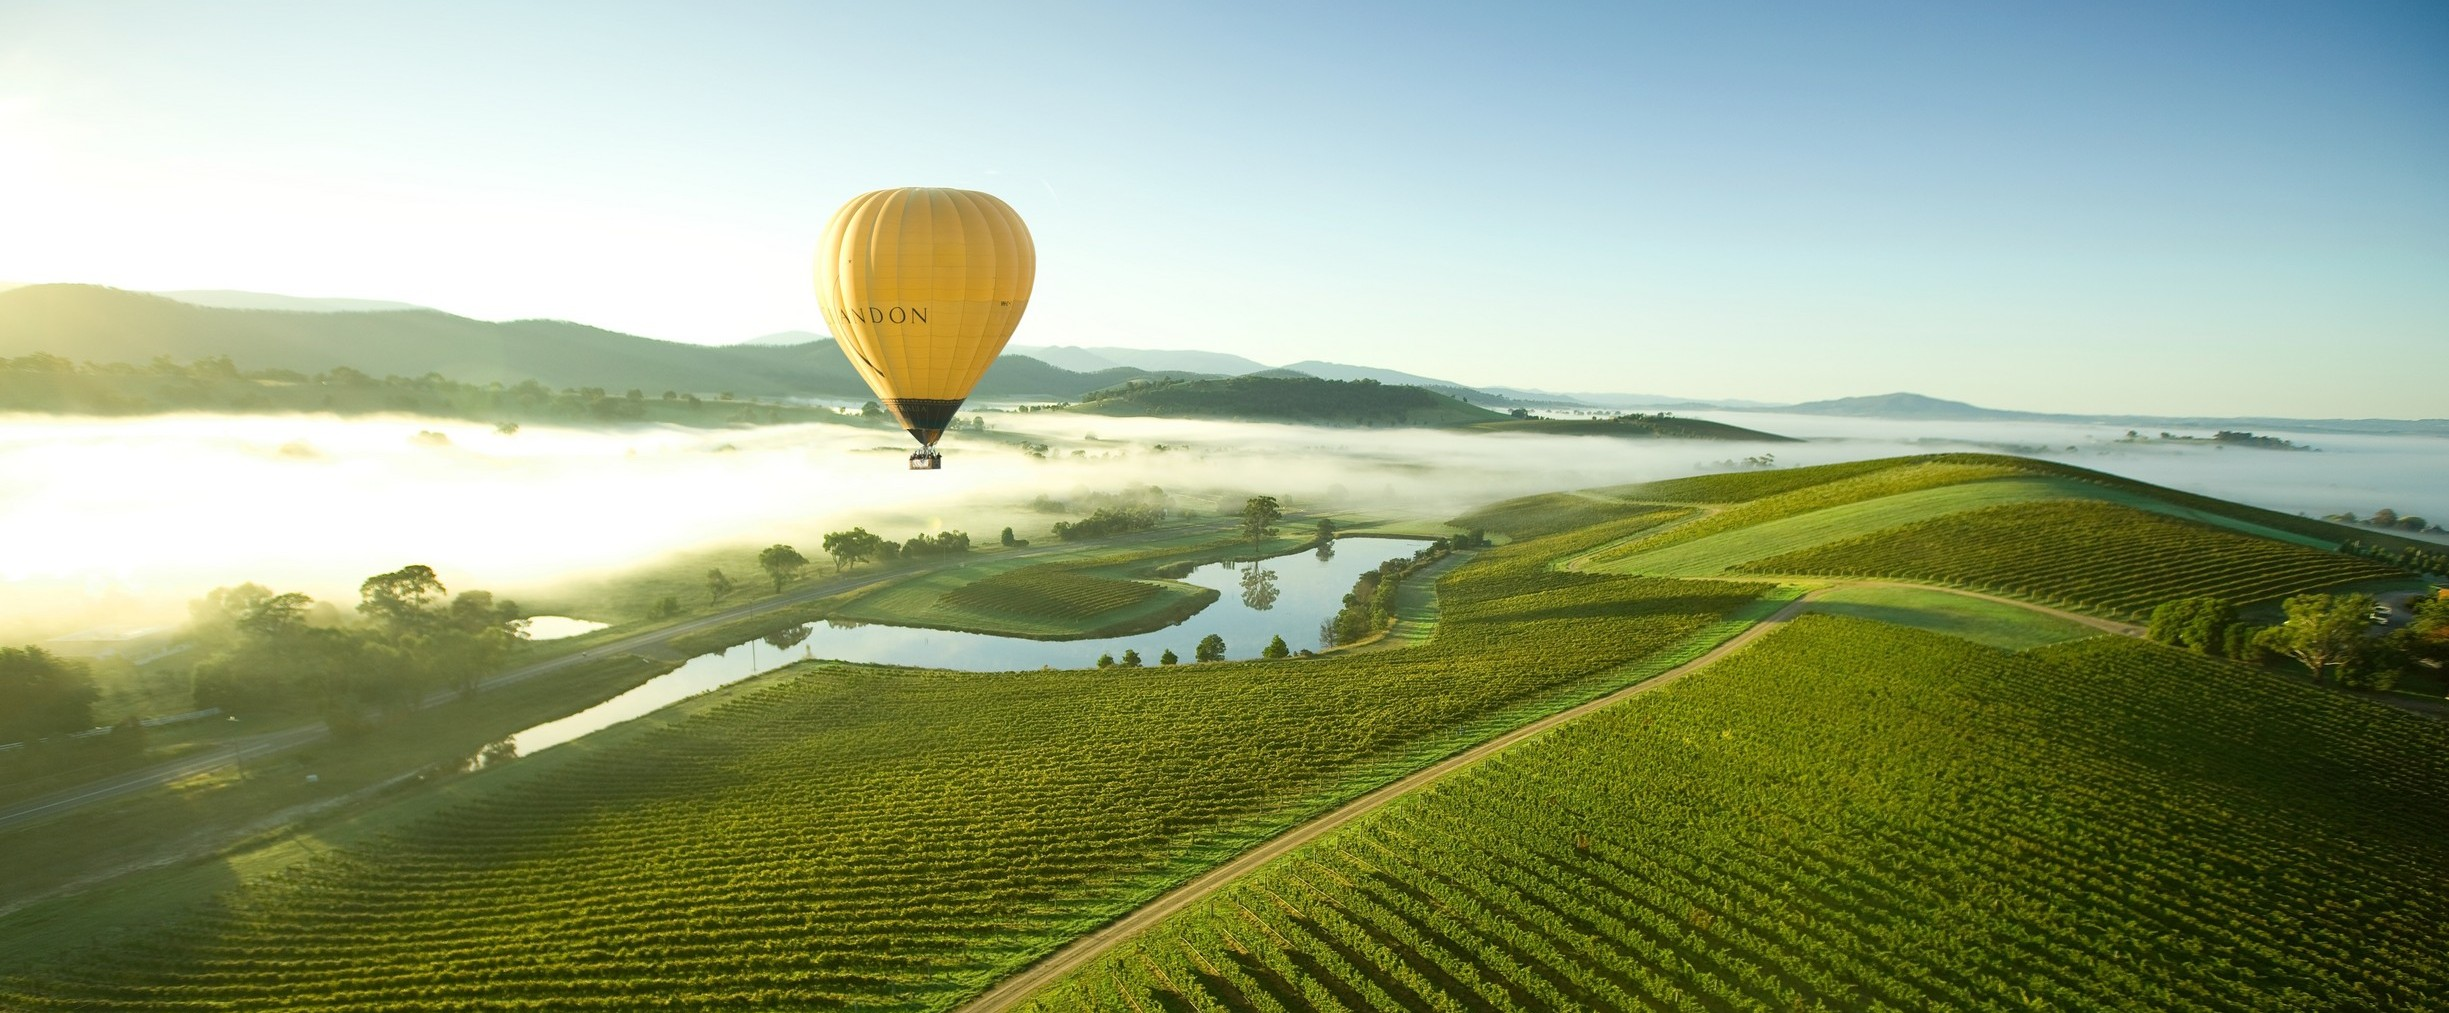 https://assets.boxdice.com.au/bell-re/attachments/bfb/96f/balloon_yarra_valley_2.jpg?0390f8ebbd2d06df50e0df3e4382f903